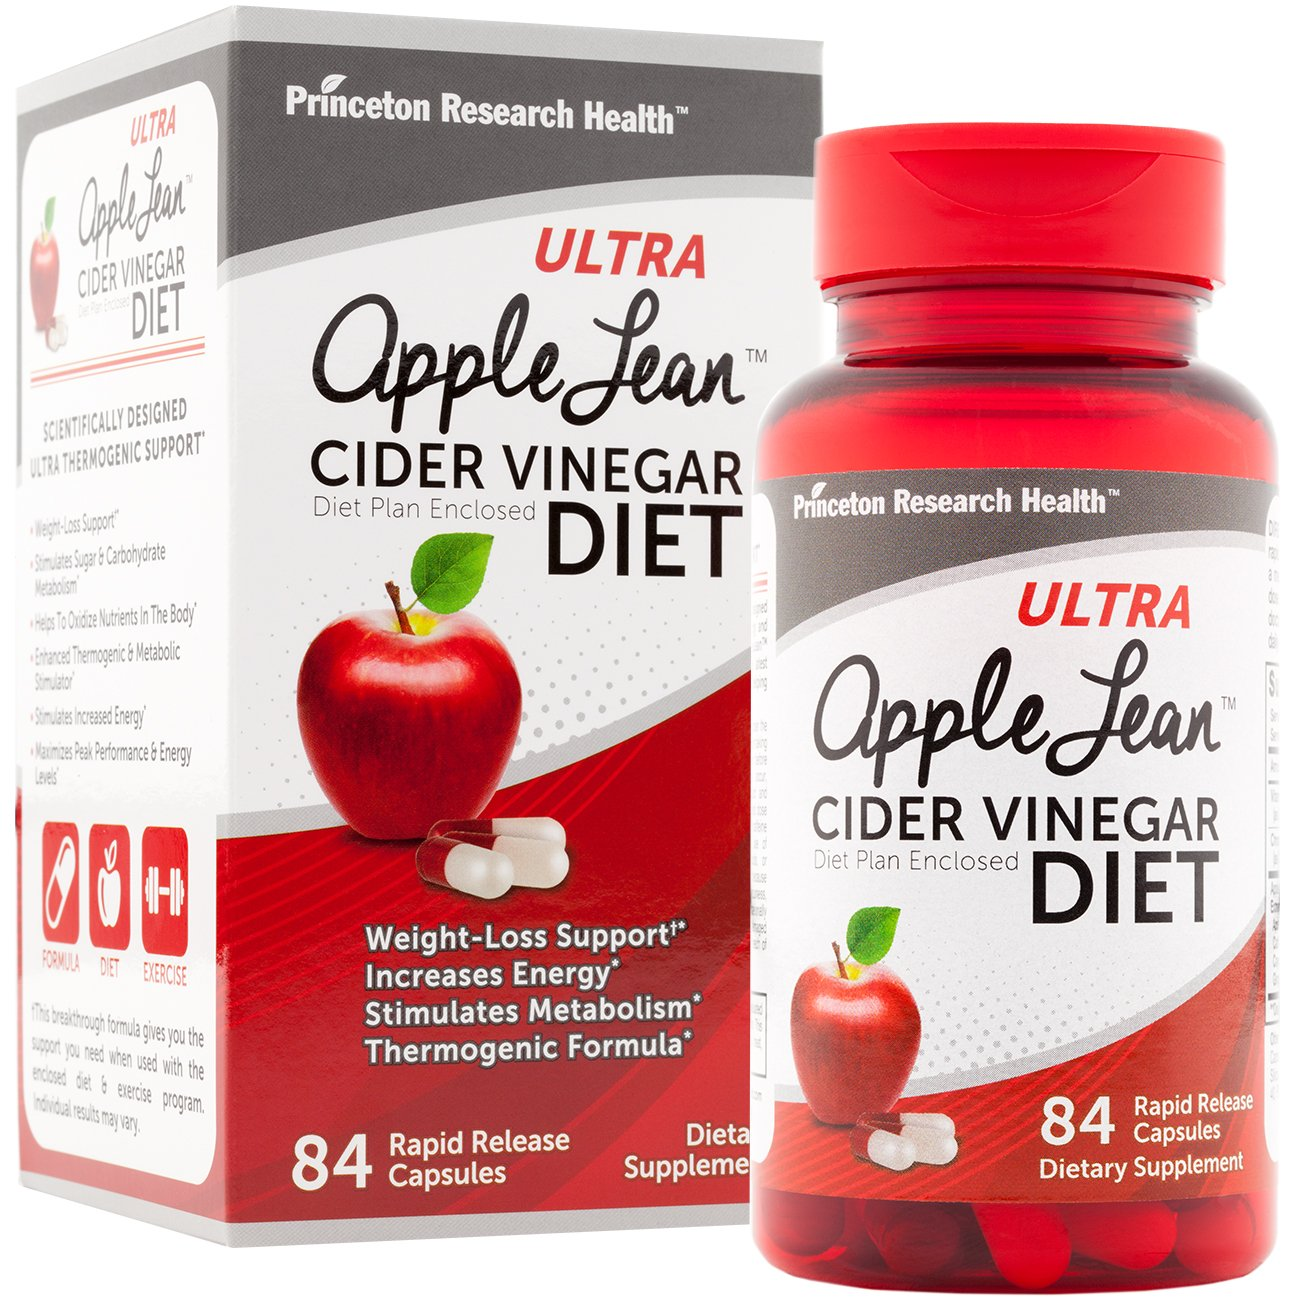 The 5 Day Apple Diet Plan Review 2019 ~ Can You Really Lose Up To 9lbs In 5 Days?